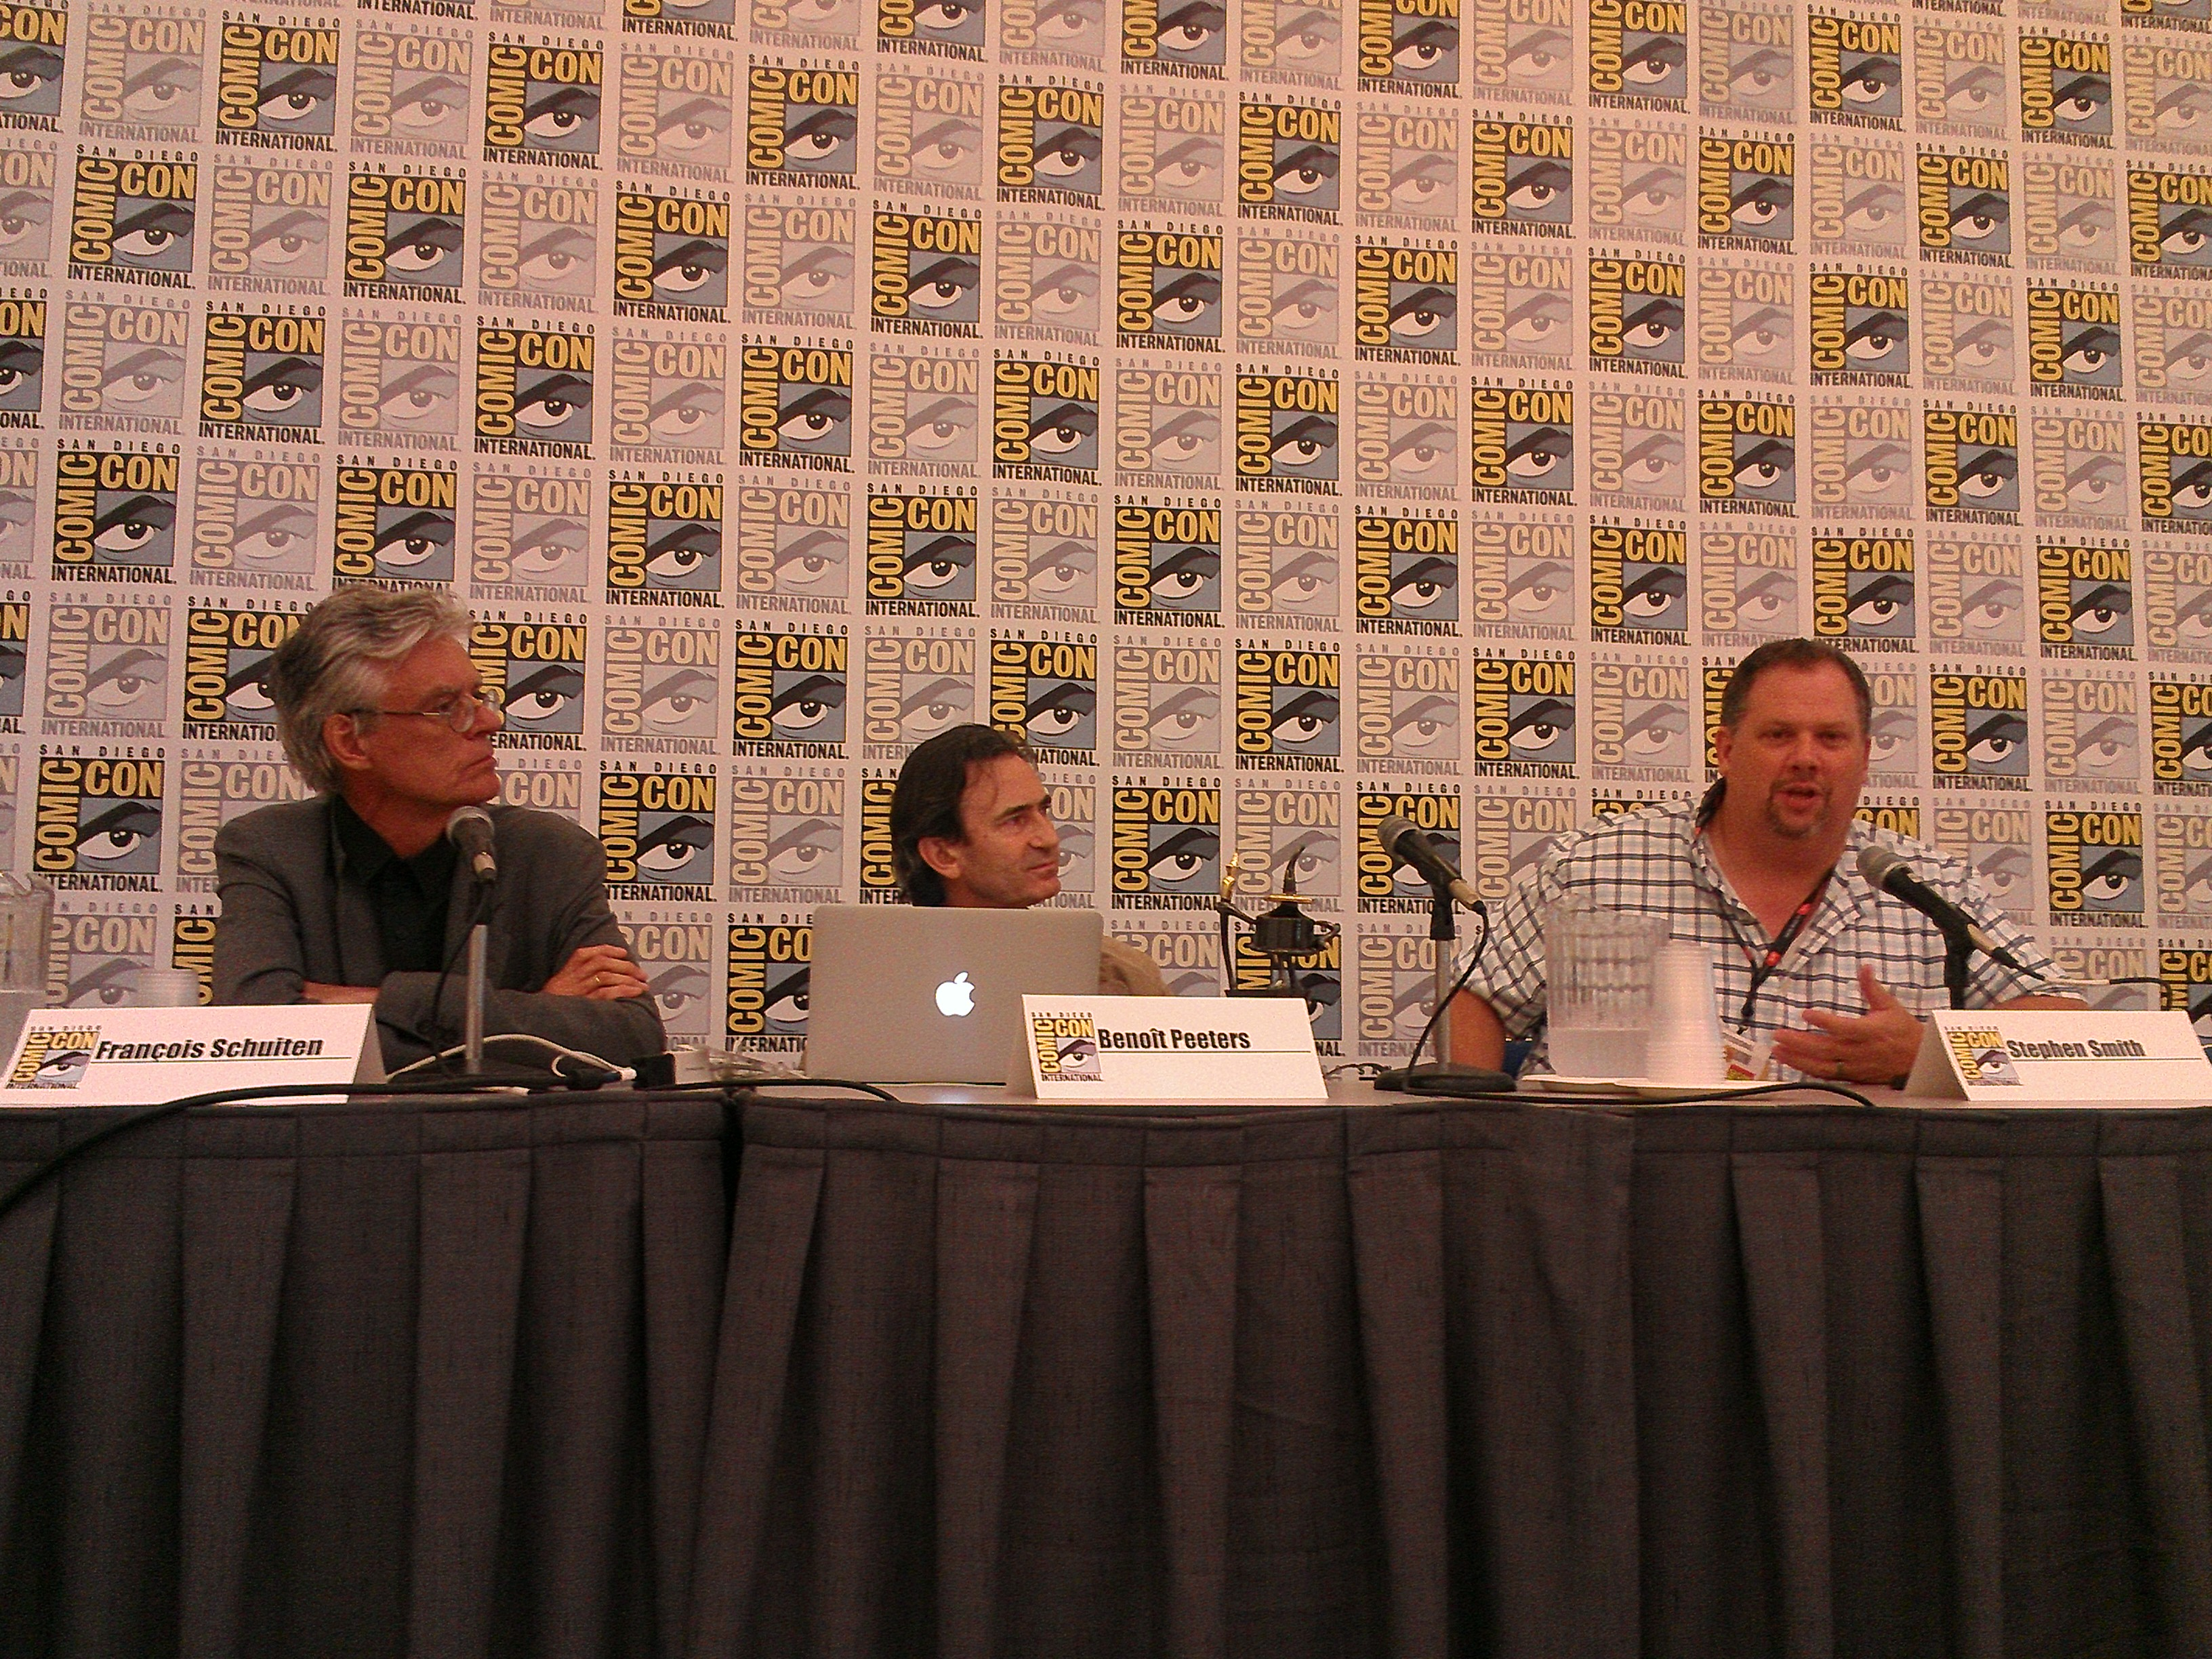 Comic-Con Panel with François Schuiten and Benoît Peeters